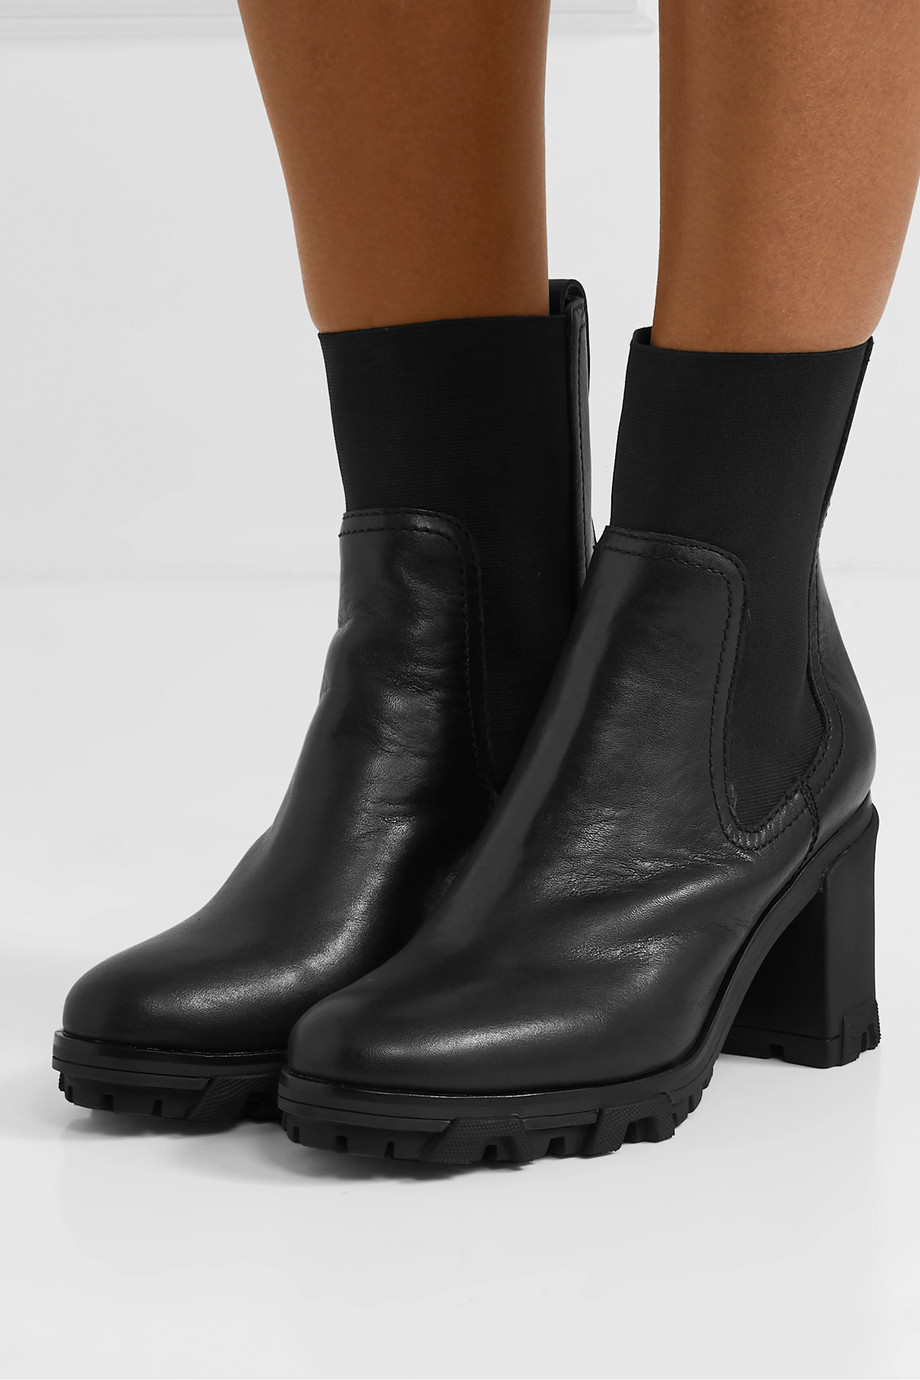 rag & bone Shiloh High leather ankle boots